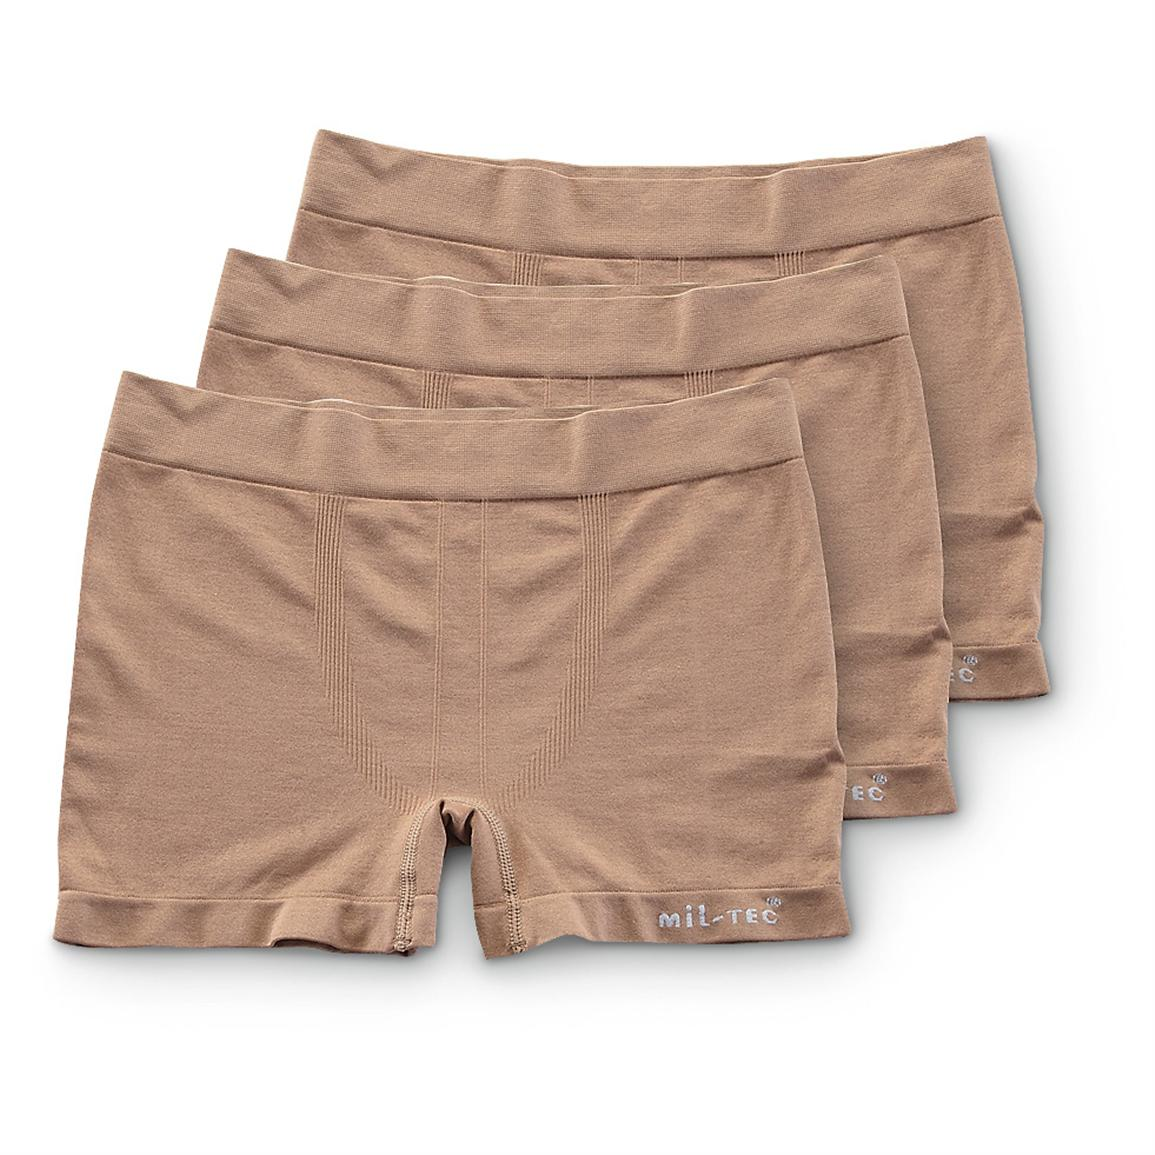 3 Mil-Tec Military Surplus Compression Shorts, Coyote